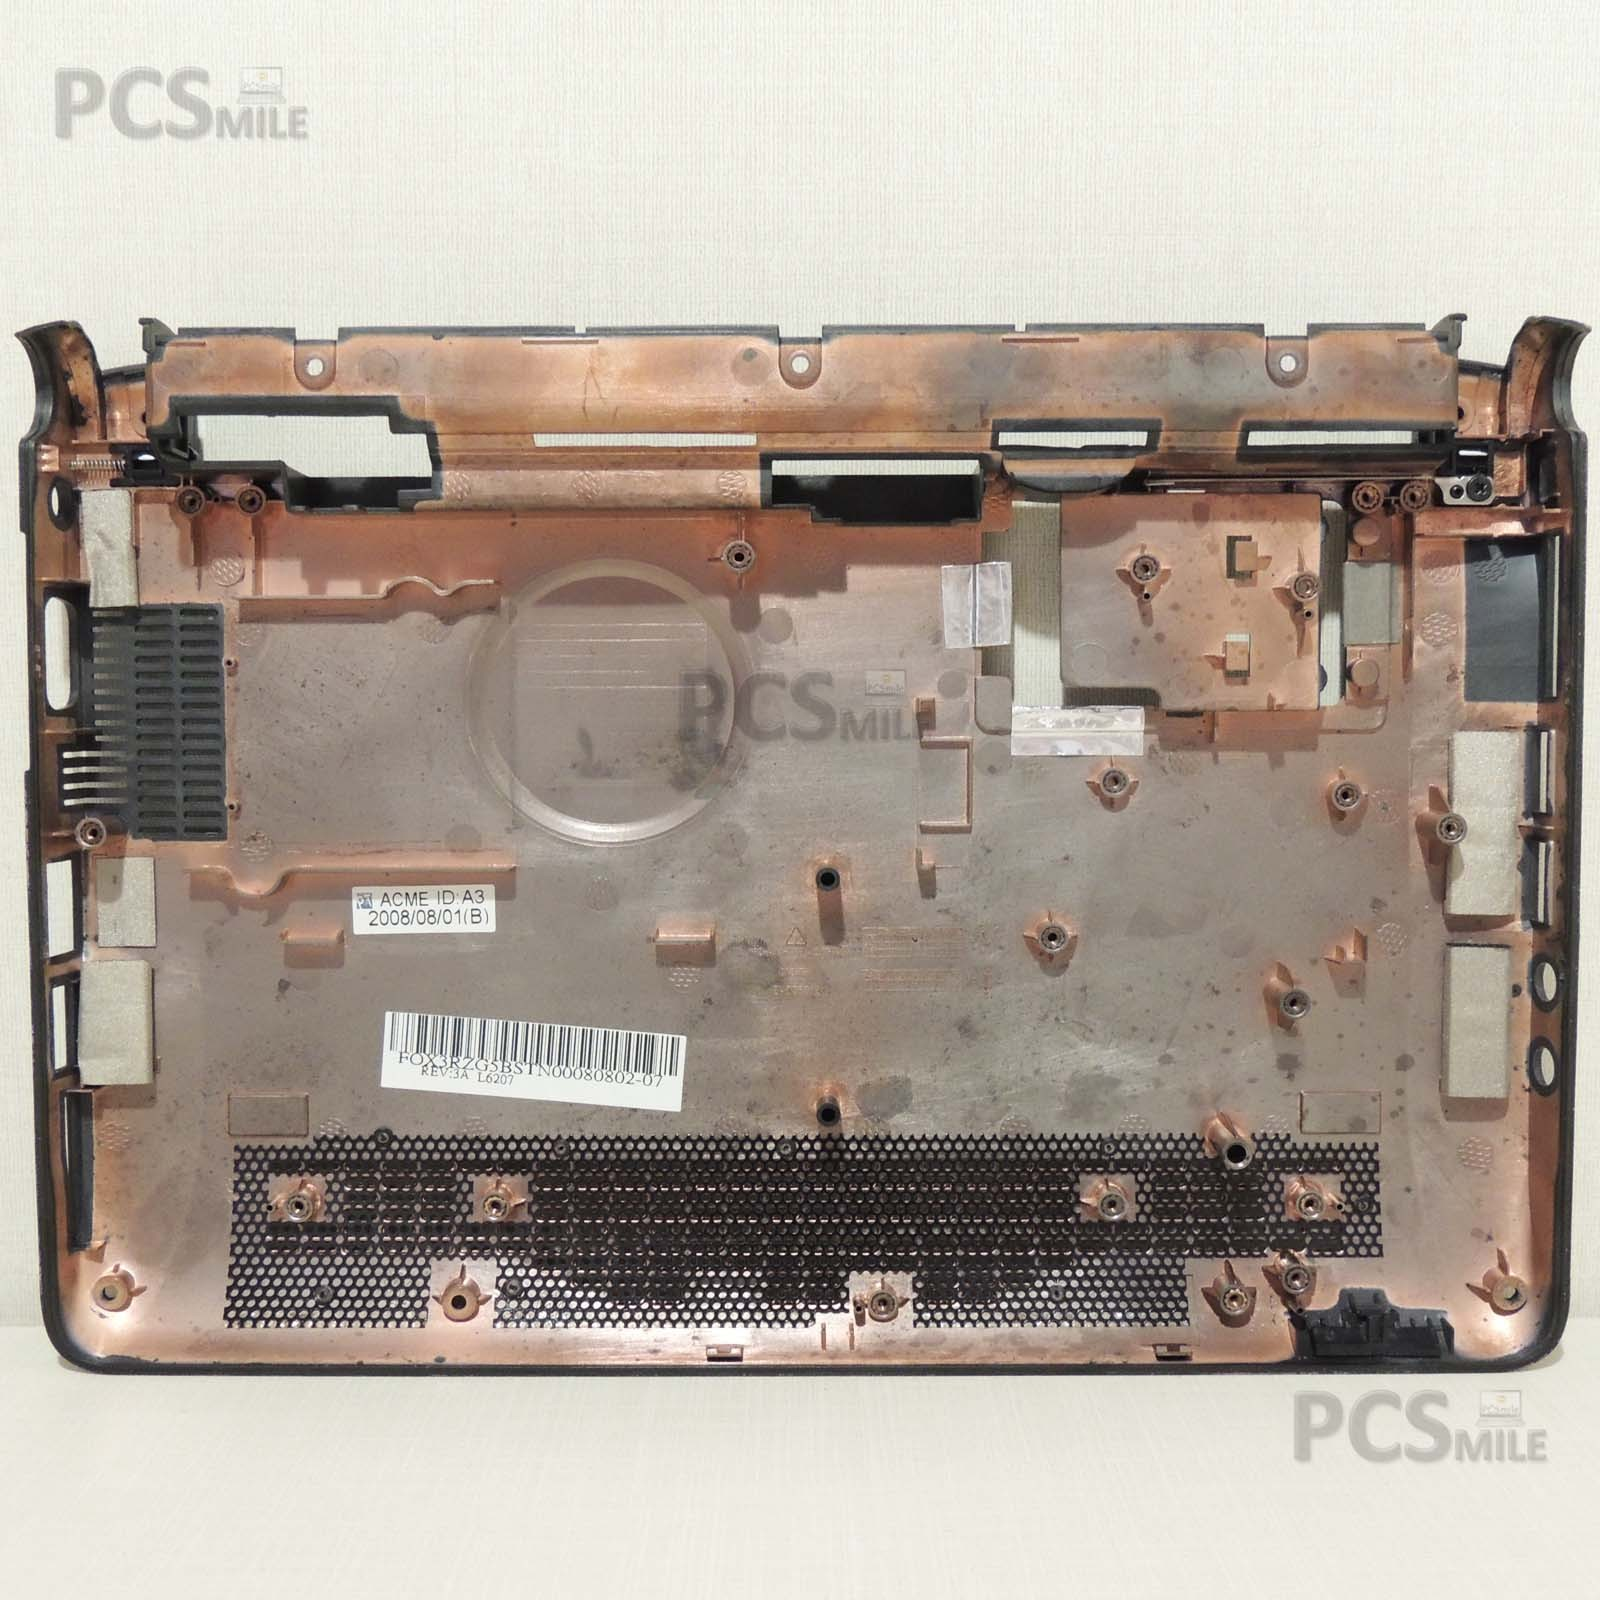 Scocca posteriore Acer Aspire one ZG5 Series Cover ACME ID:A3 PTKS PT-4